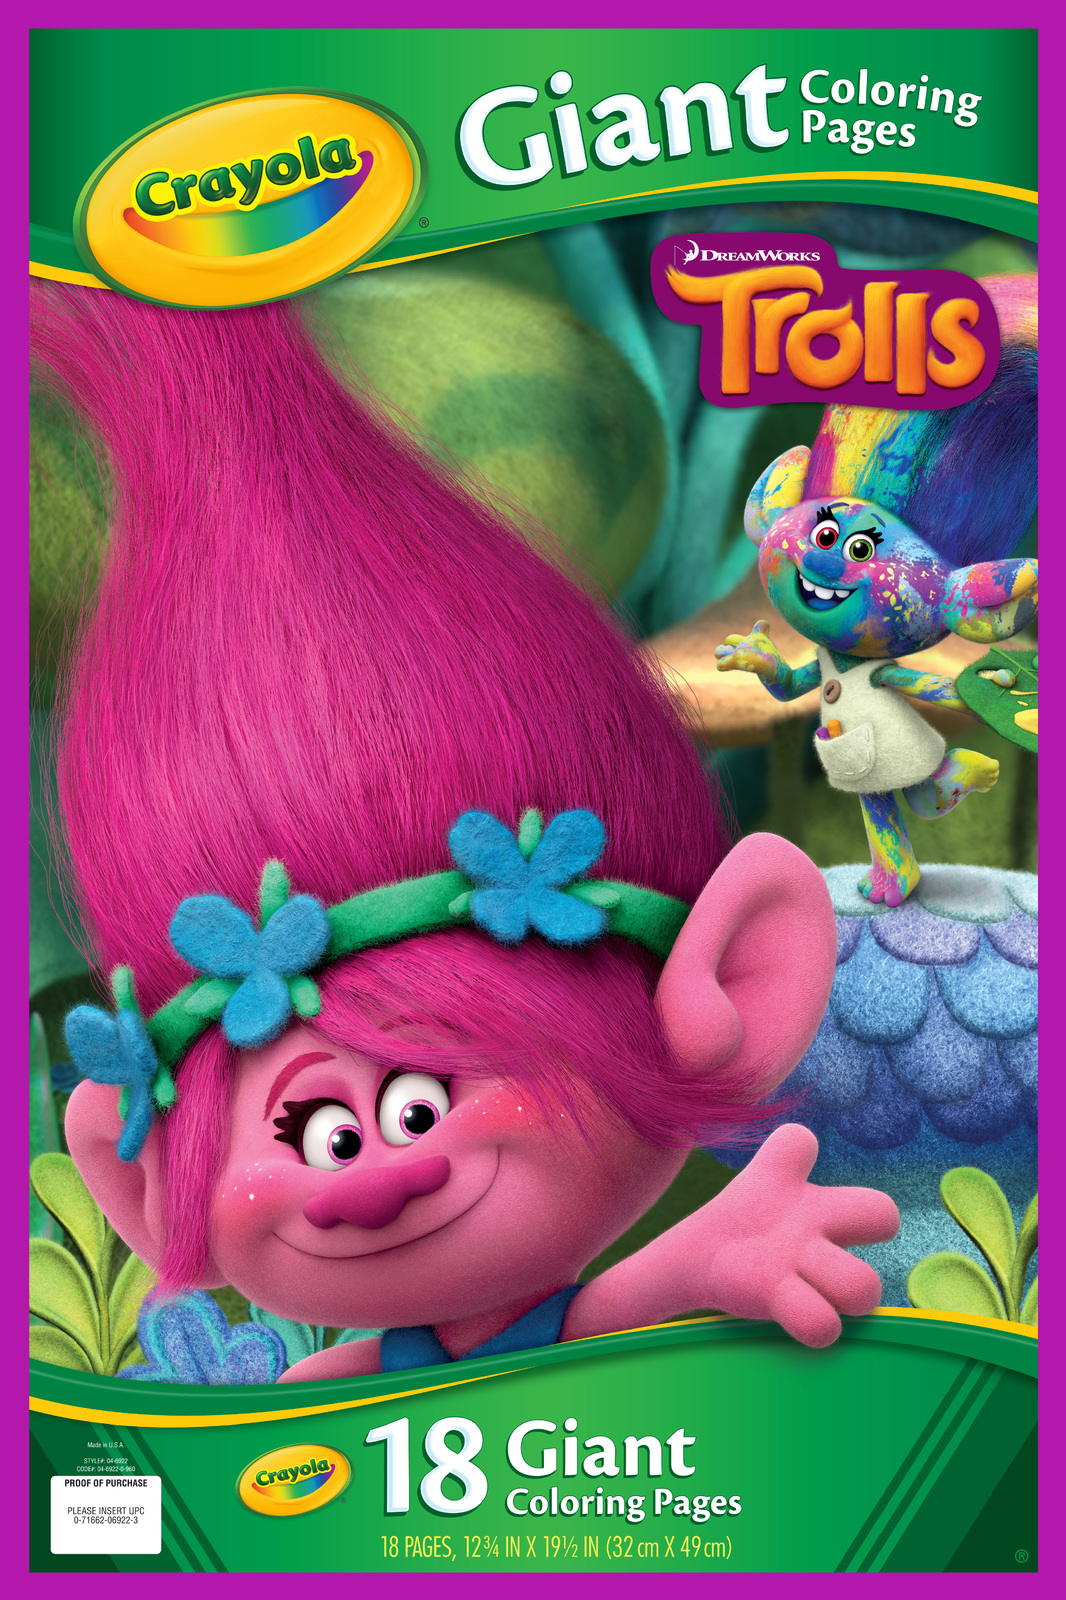 Crayola Giant Coloring Pages Crayola Giant Coloring Pages Trolls Toy At Mighty Ape Australia